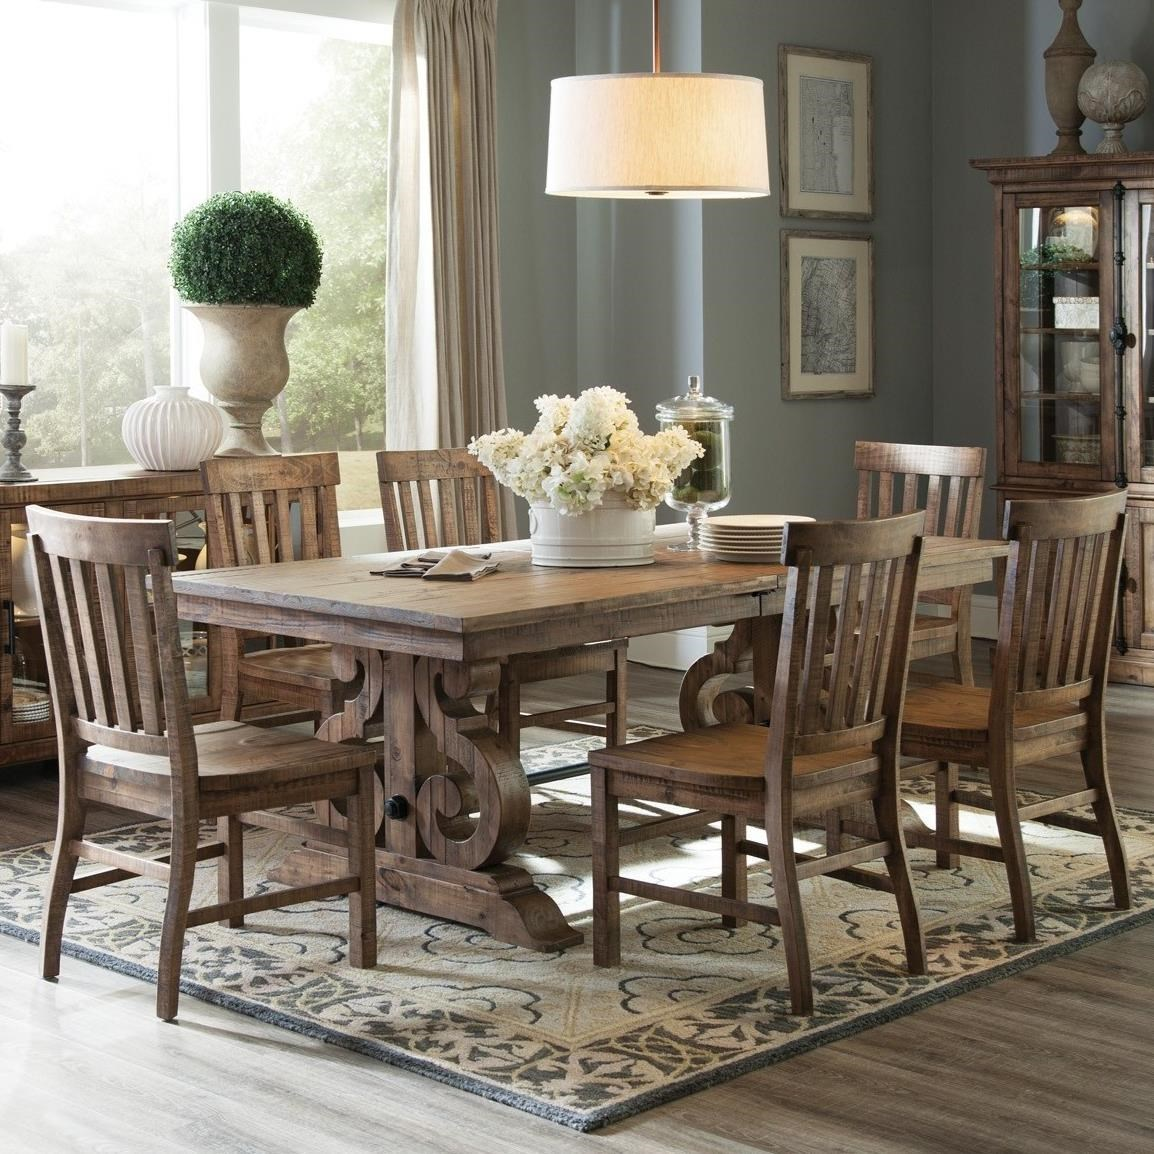 Magnussen Home Willoughby Solid Pine 7 Piece Rectangular Dining Table Set